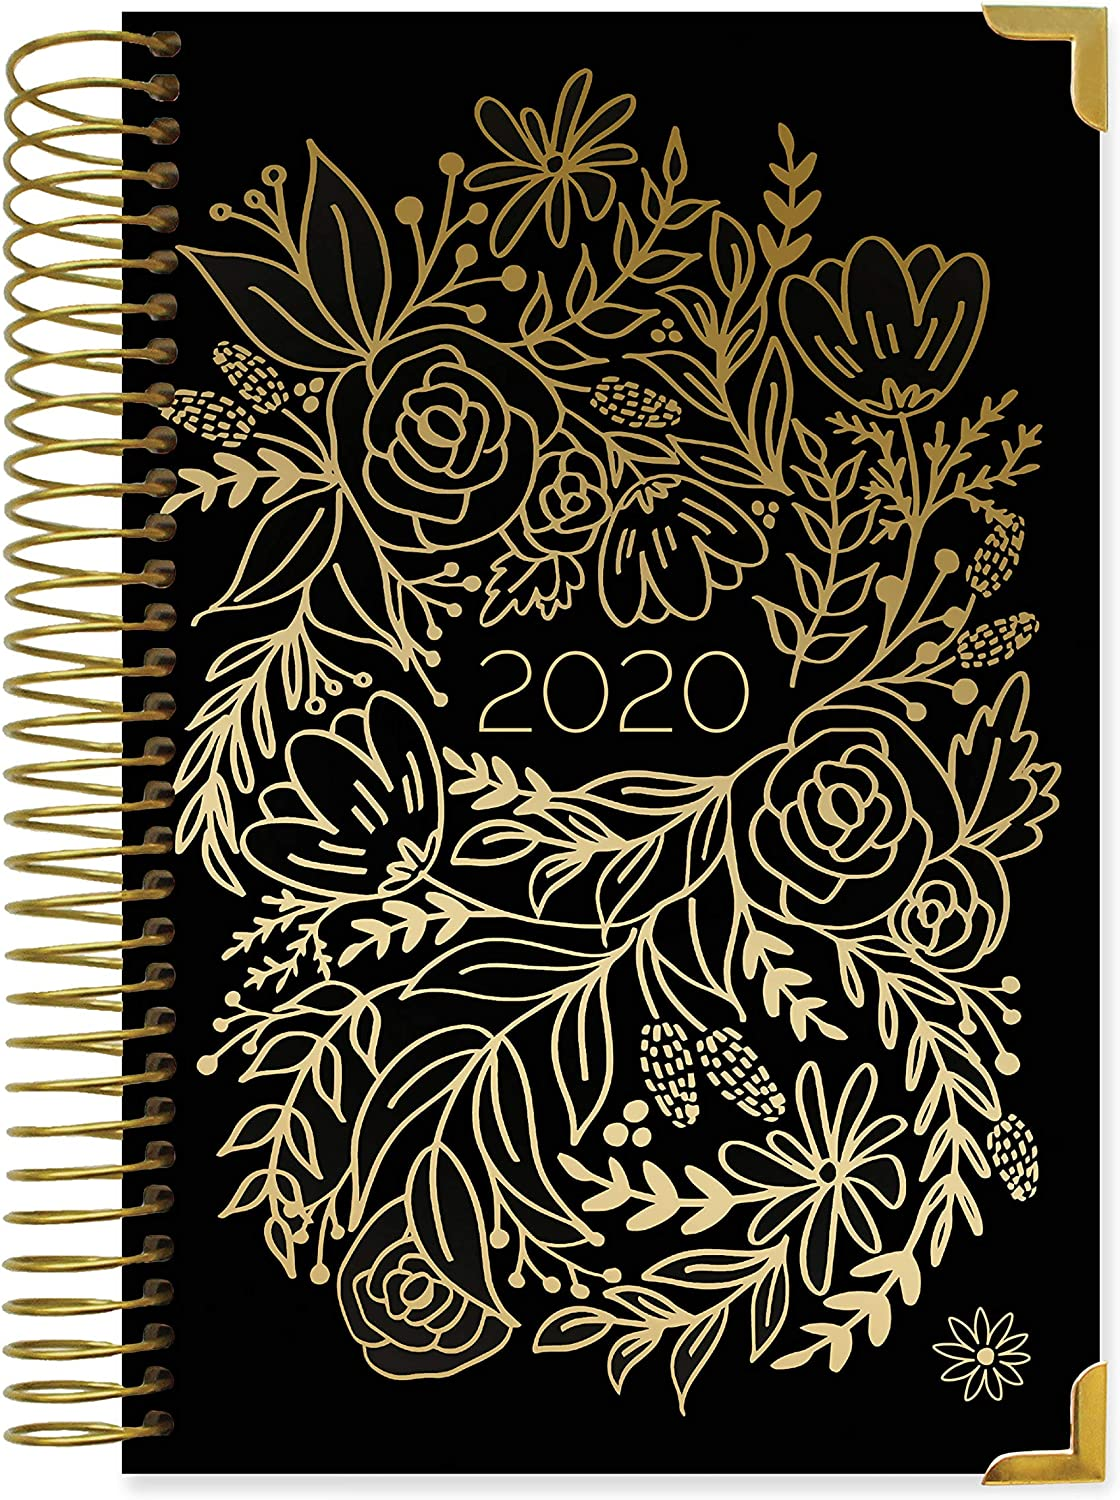 HARDCOVER bloom daily planners 2020 Calendar Year Day Planner (January 2020 - December 2020) - Passion/Goal Organizer - Monthly & Weekly Inspirational ...